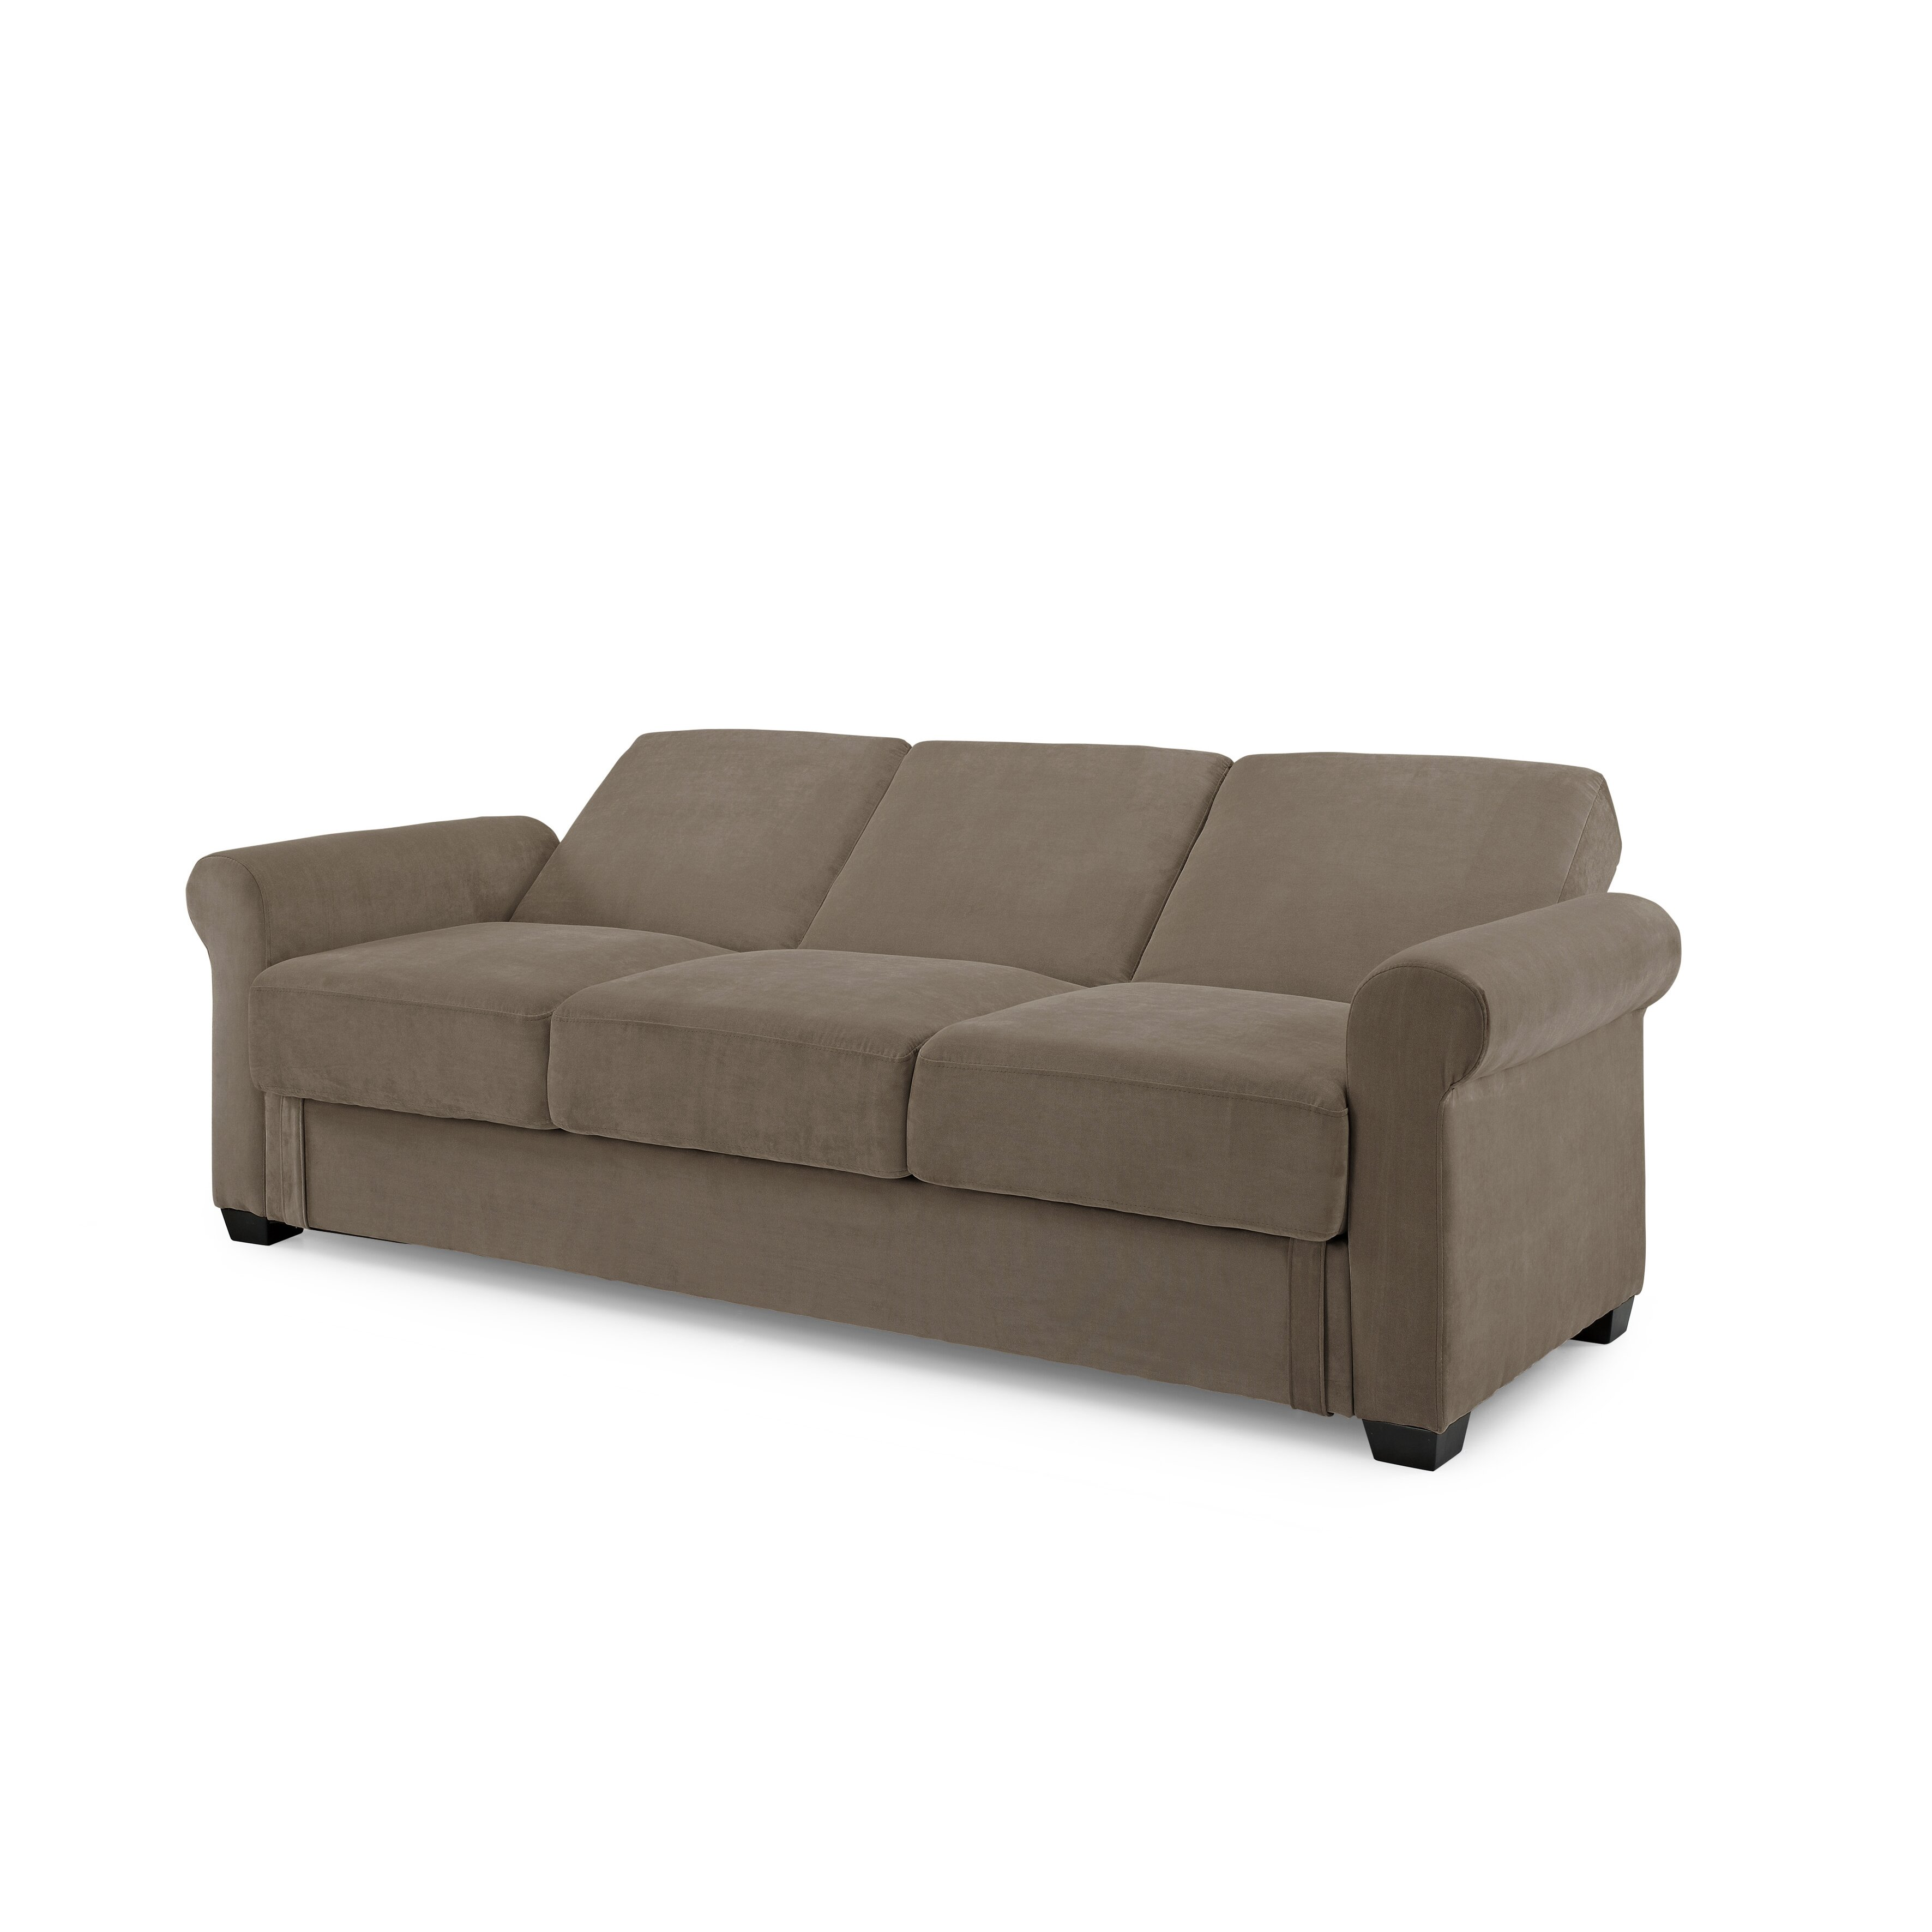 lifestyle solutions serta dream thomas sleeper sofa reviews wayfair. Black Bedroom Furniture Sets. Home Design Ideas